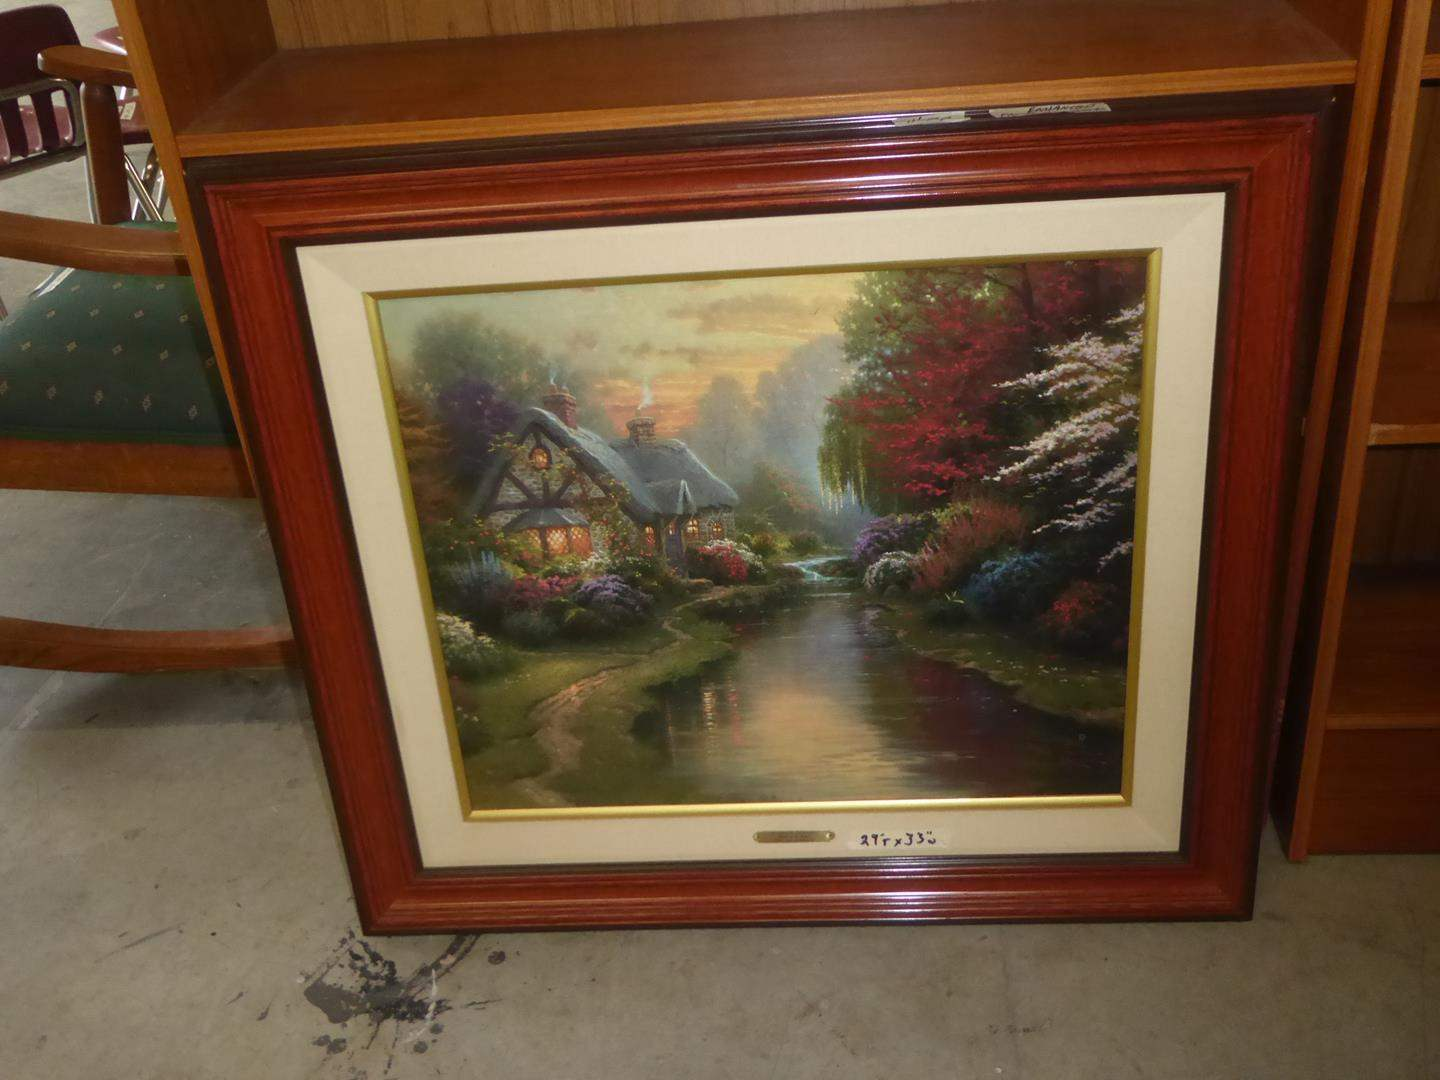 """Lot # 79 - Framed Enhanced Print on Canvas """"A Quiet Evening"""" by Thomas Kinkade (main image)"""